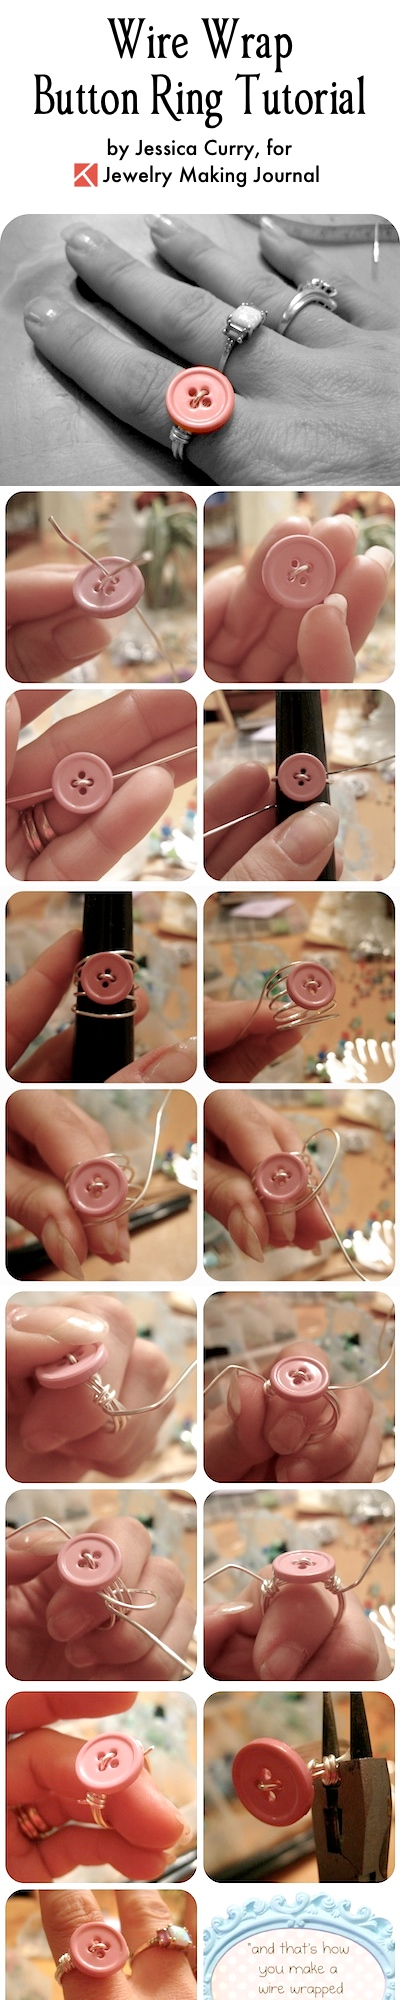 Wire Wrap Button Ring Tutorial, by Jessica Curry  - featured on Jewelry Making Journal